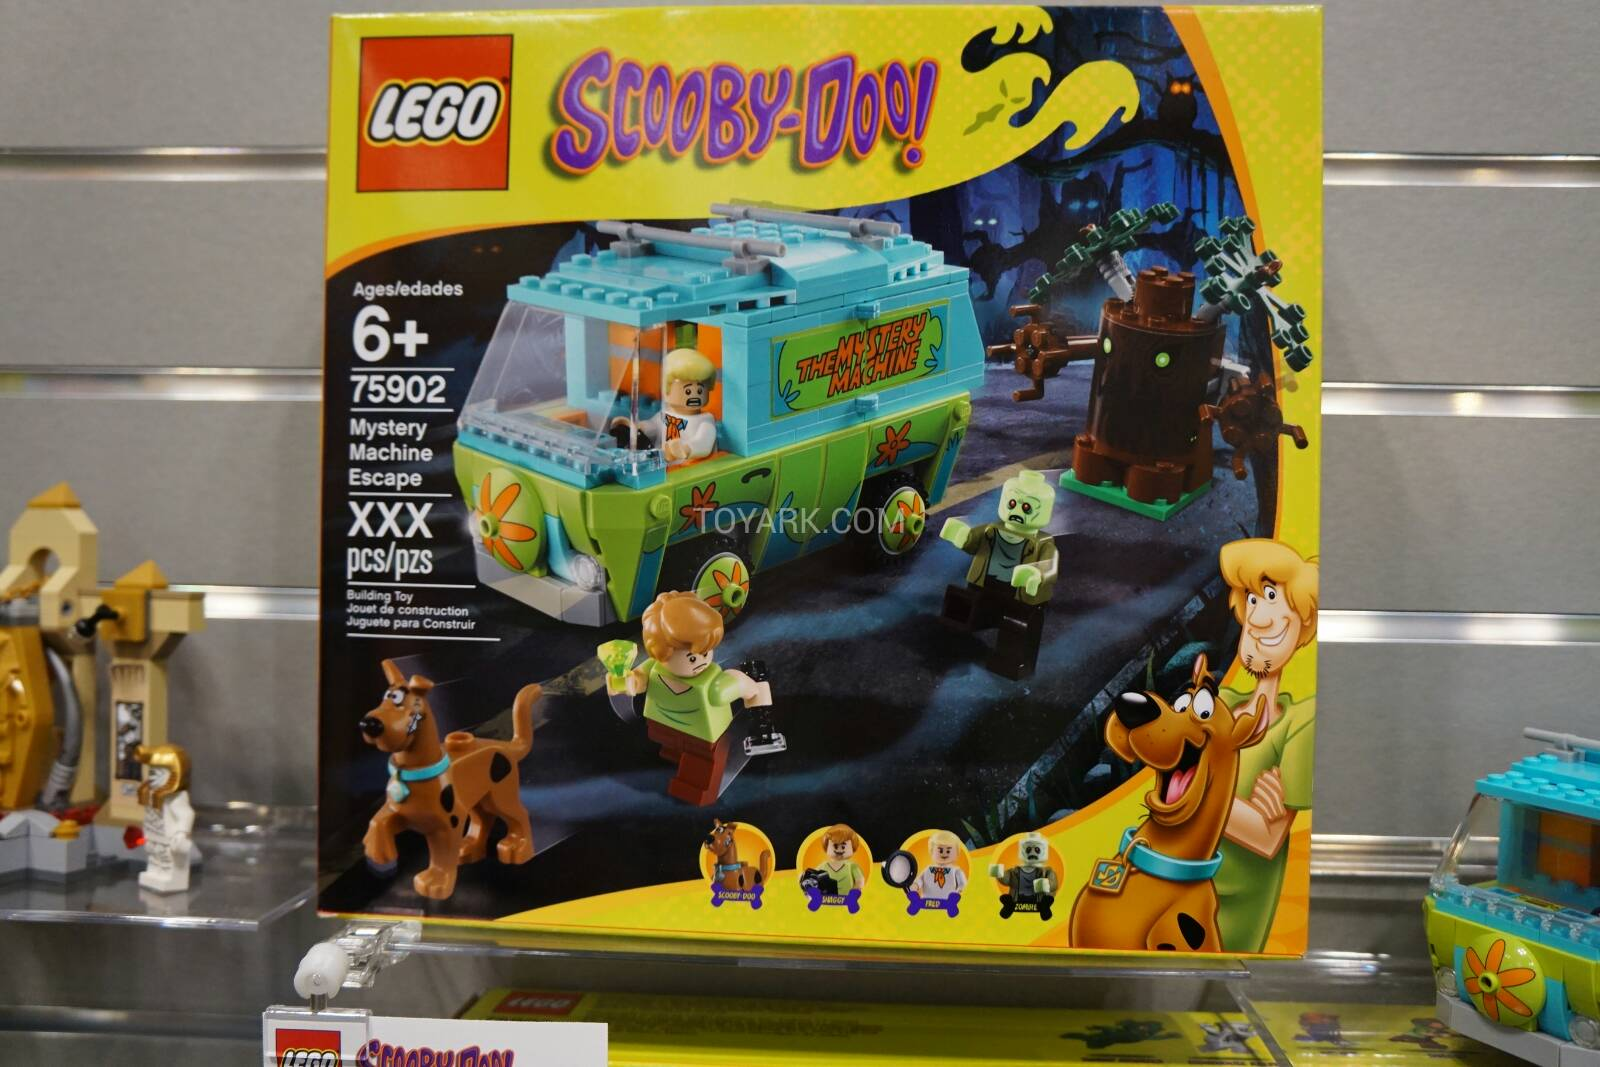 Toy-Fair-2015-LEGO-Scooby-019.jpg